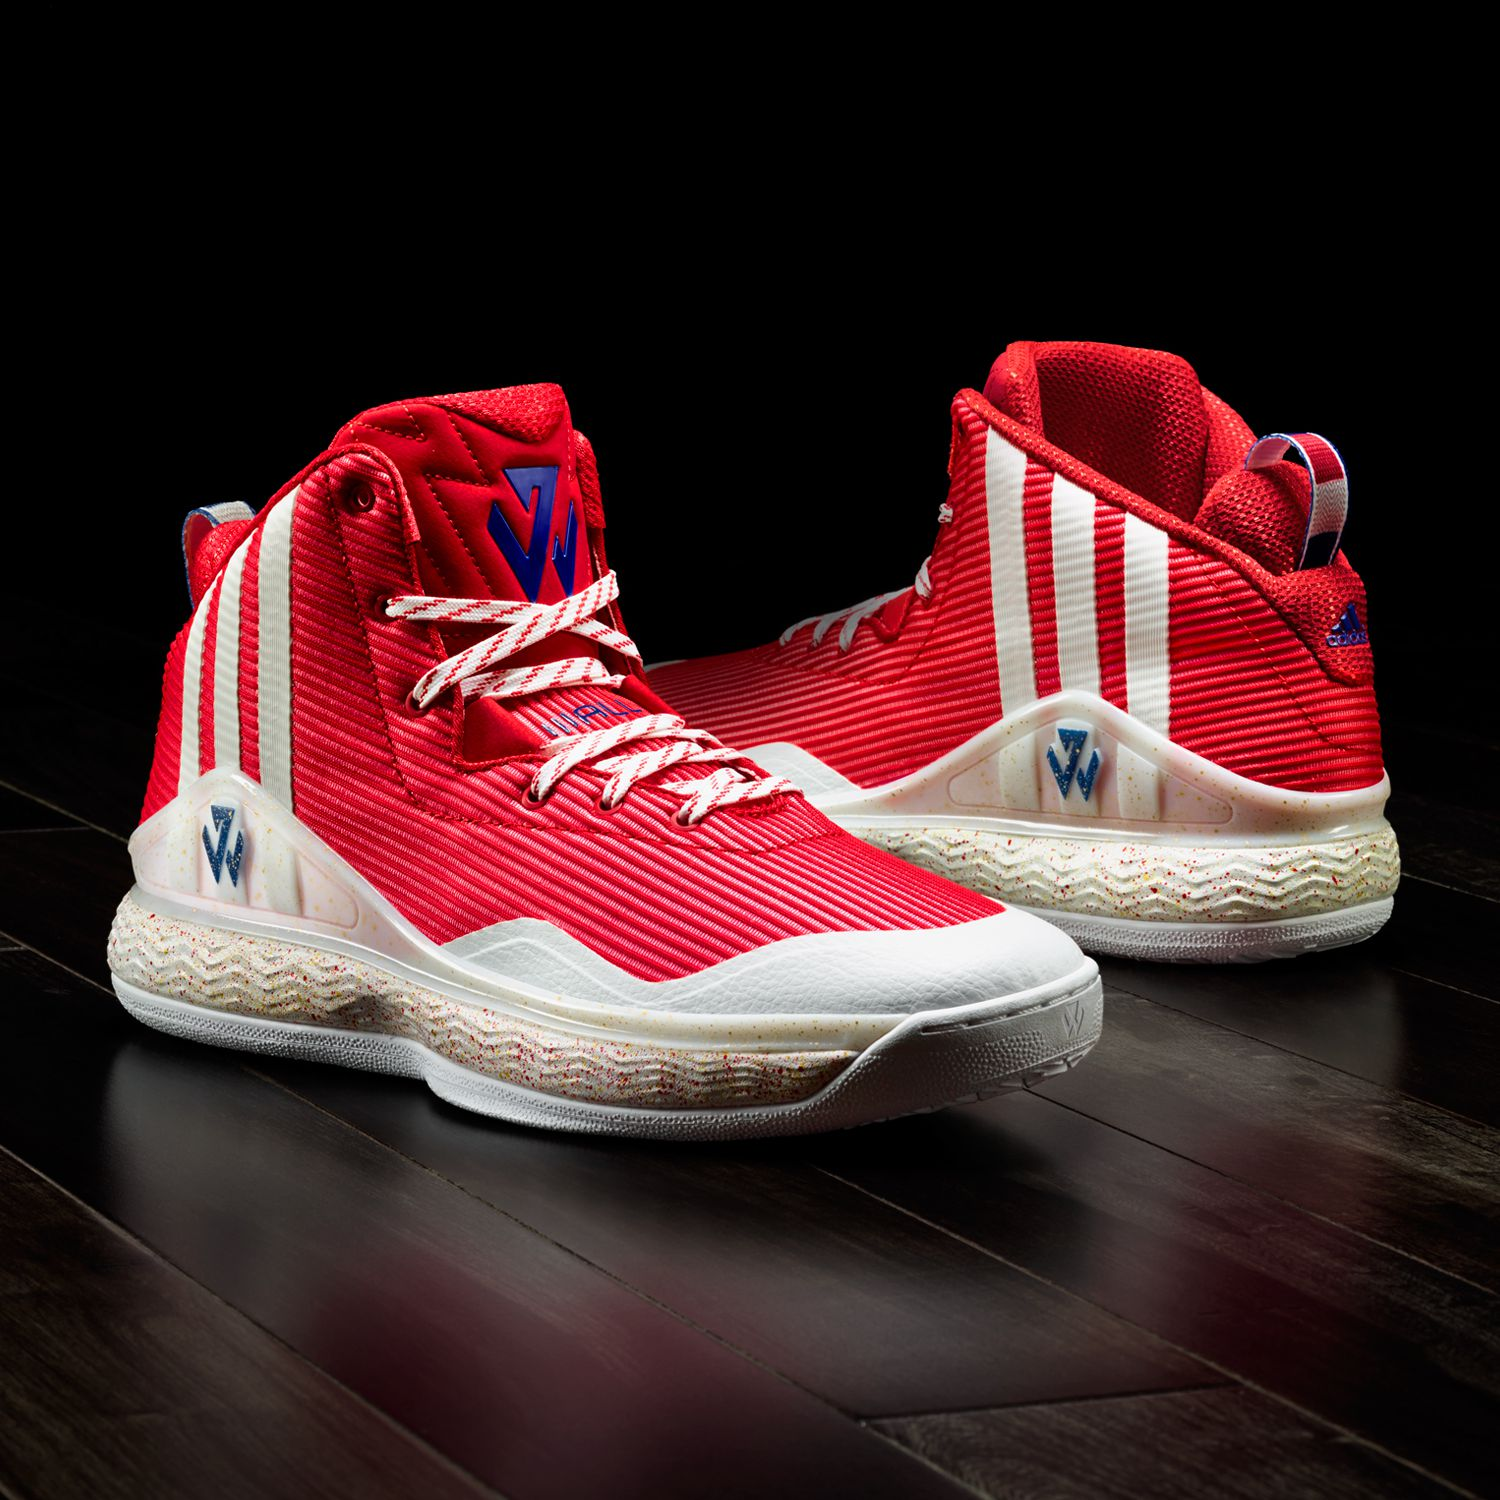 John Wall Signature Shoes Adidas